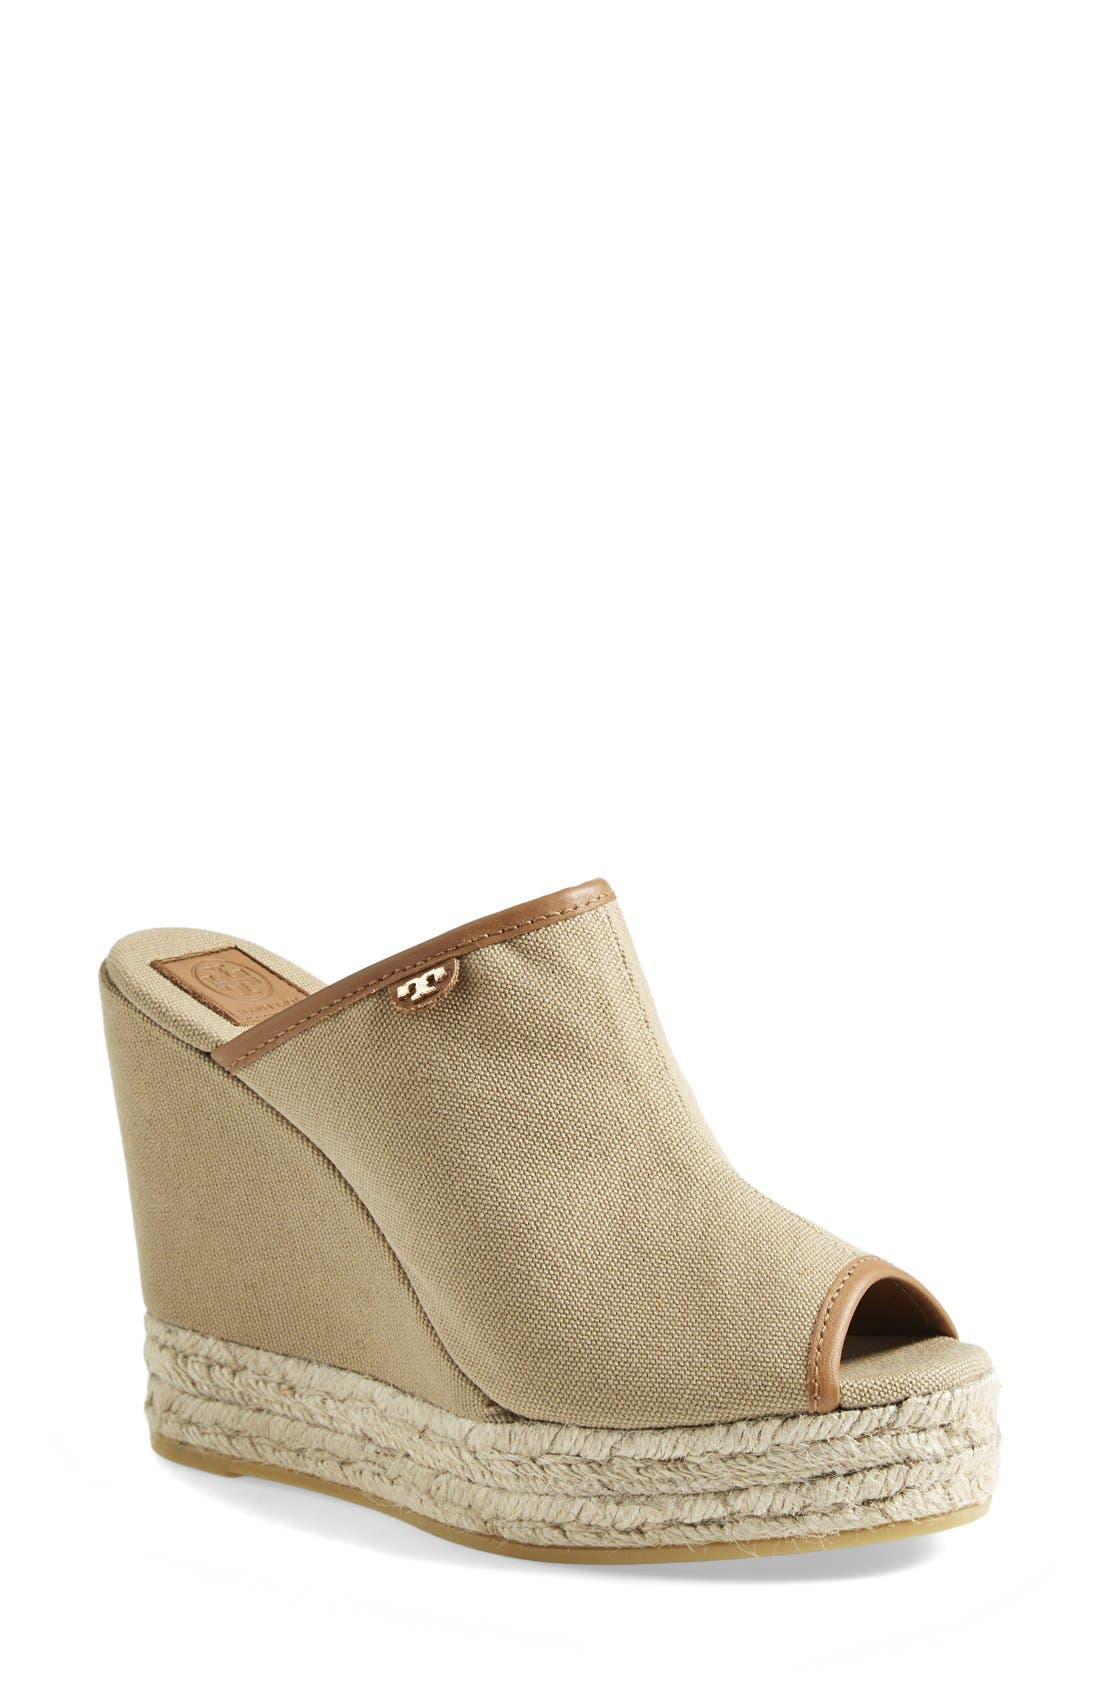 Main Image - Tory Burch Canvas Wedge Sandal (Women)